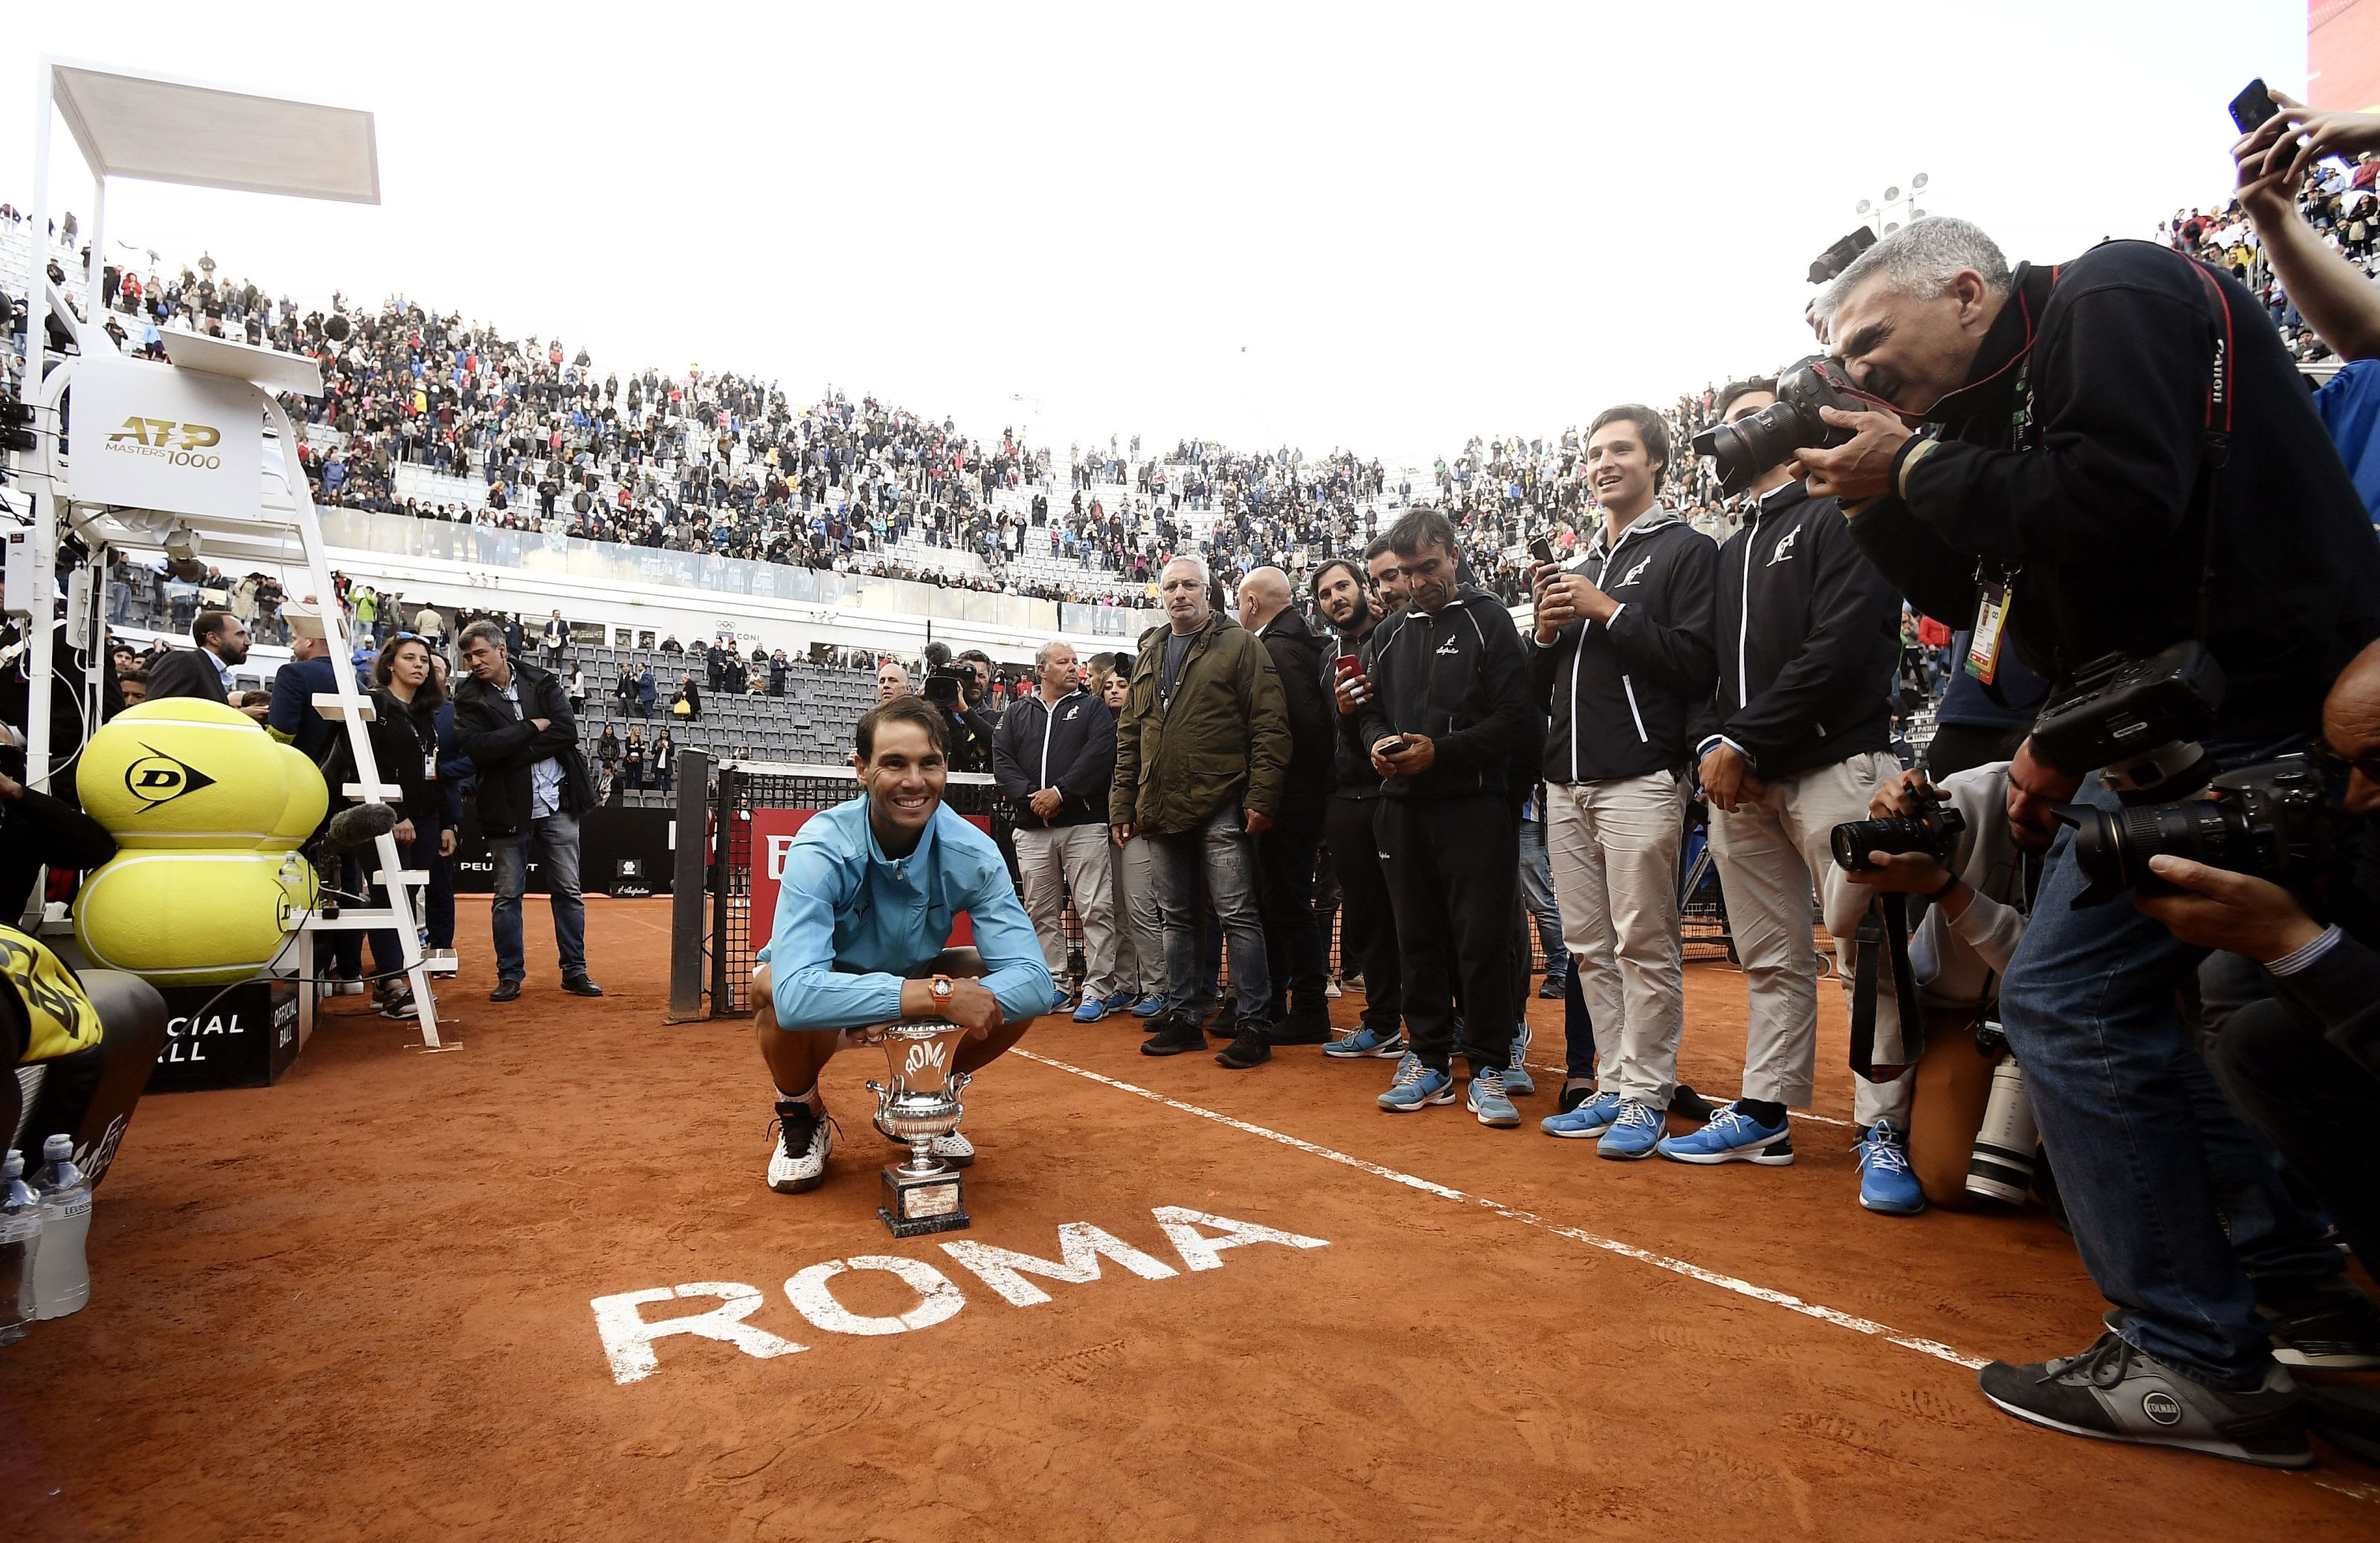 How Rome S Rescheduling Significantly Impacts Clay Court Draws